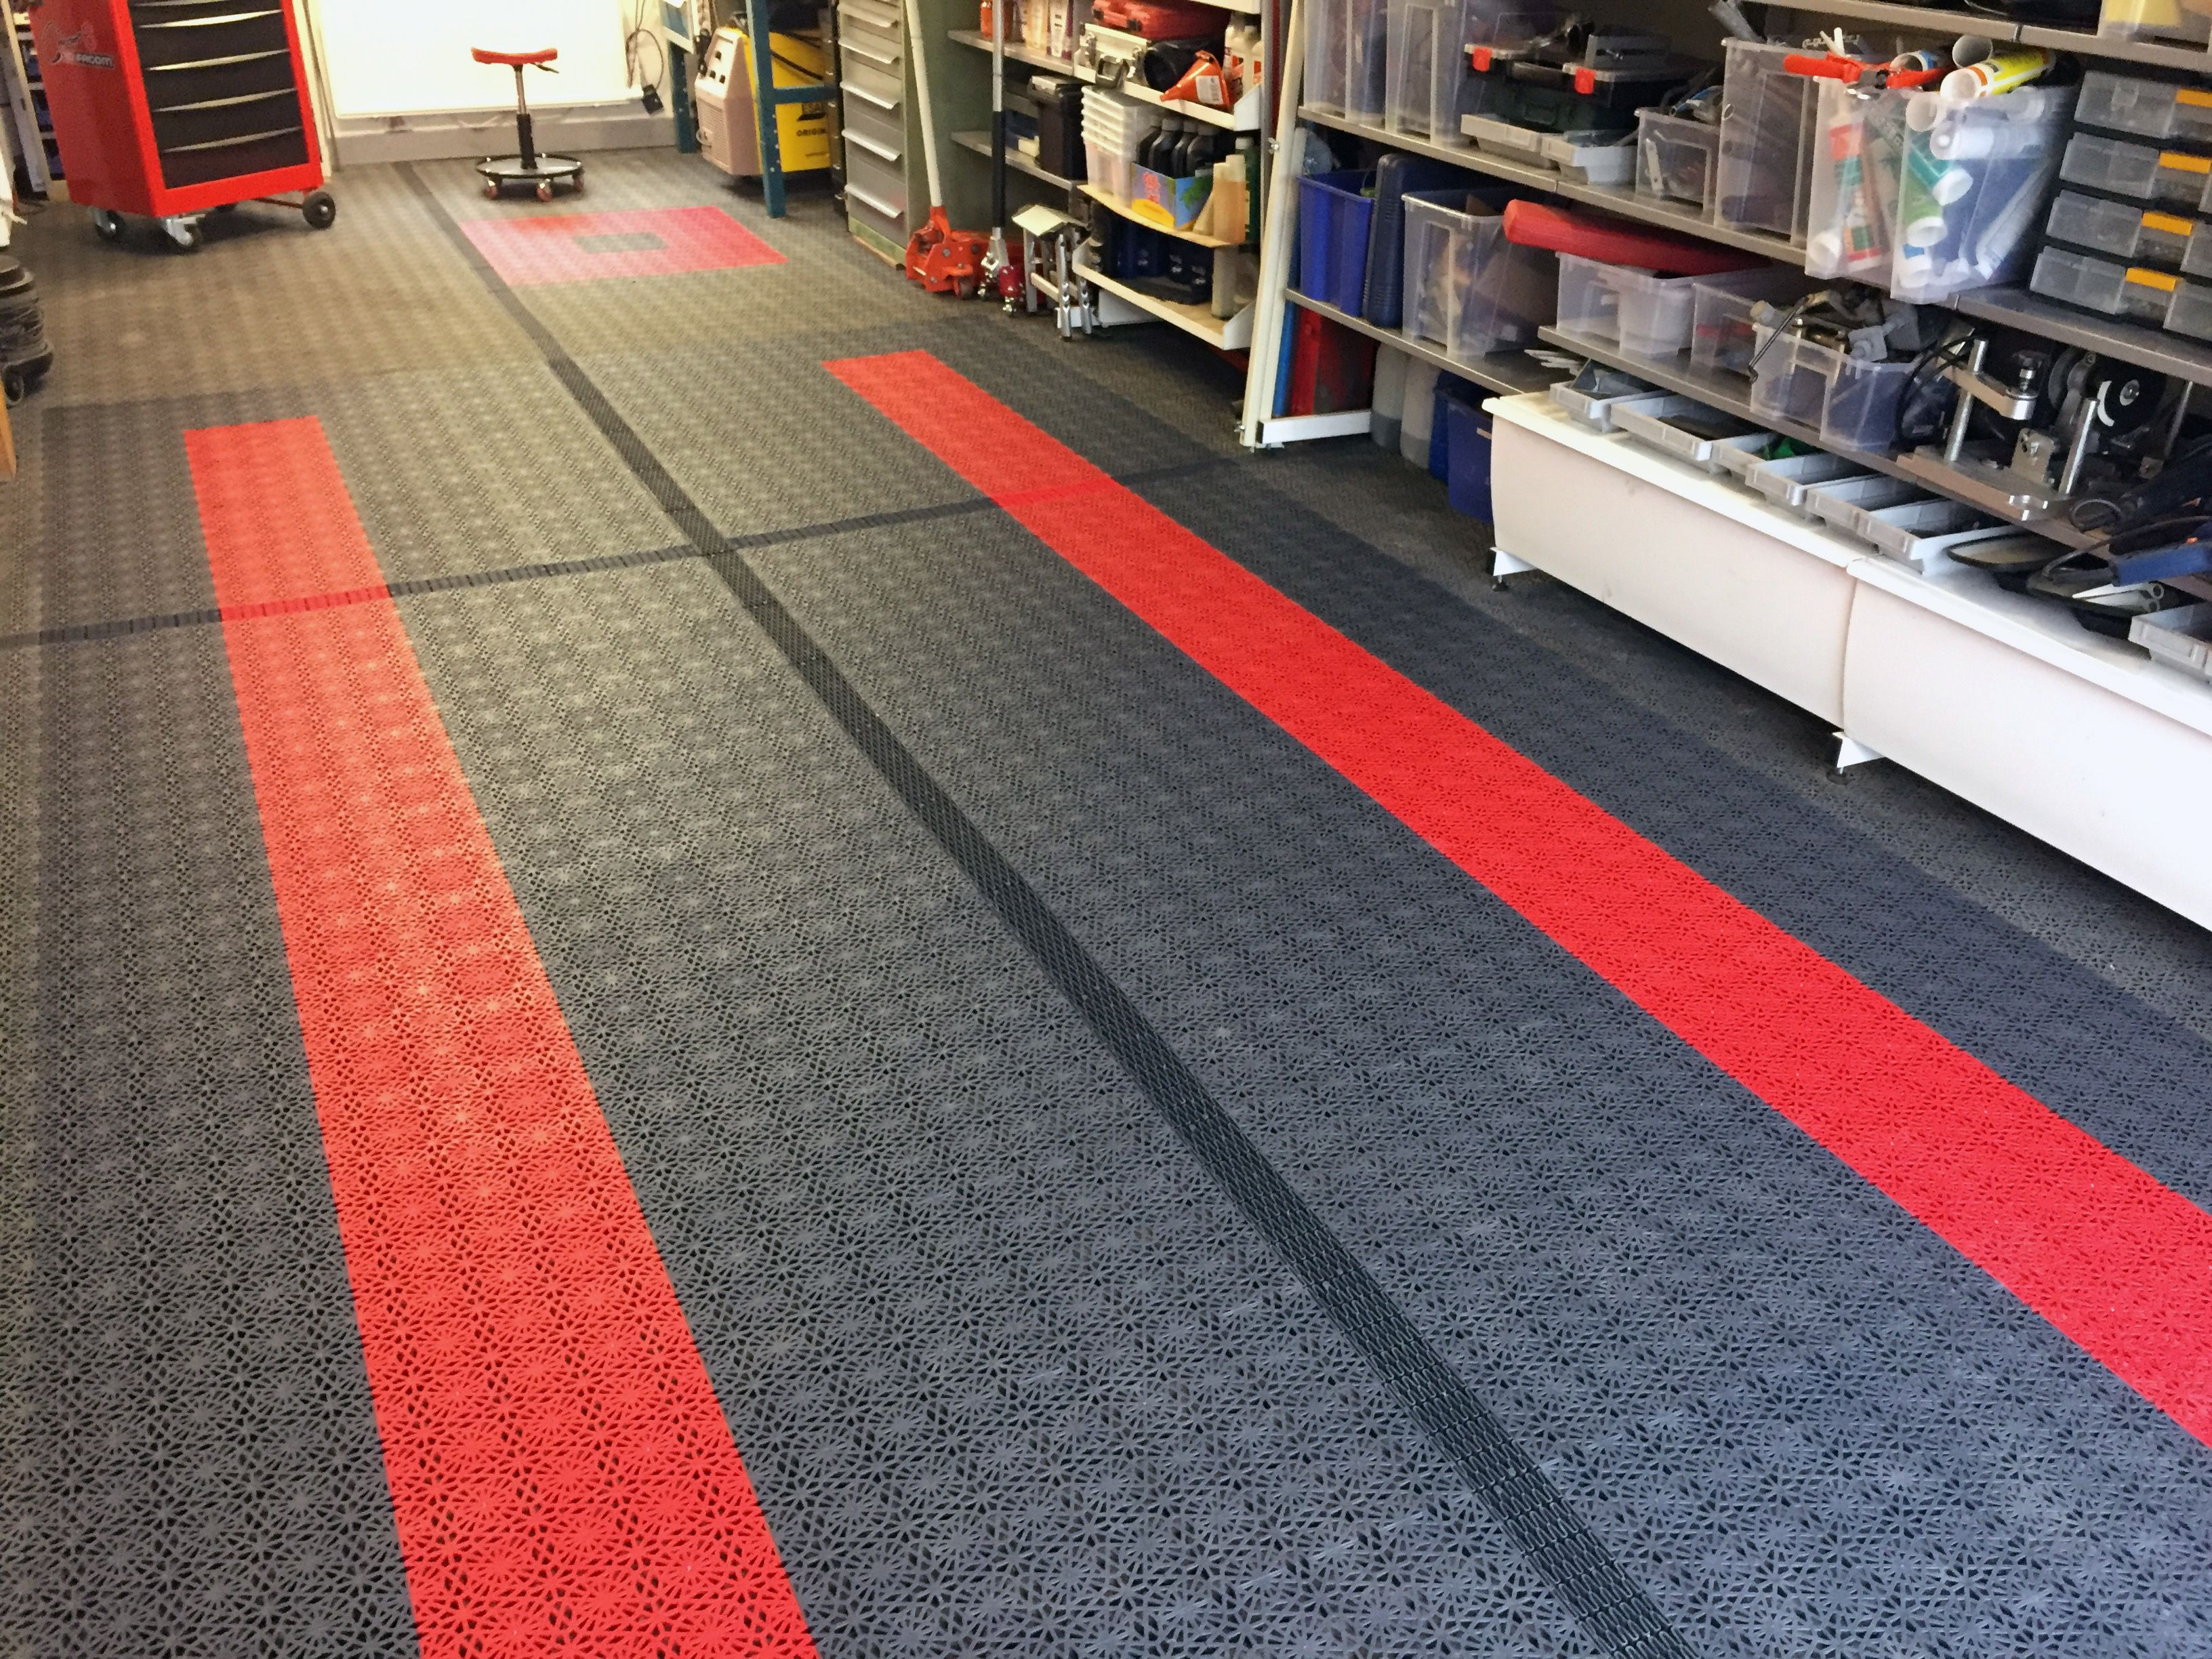 Garage floor bergo royal picture from a satisfied customer diy garage floor bergo royal picture from a satisfied customer dailygadgetfo Images